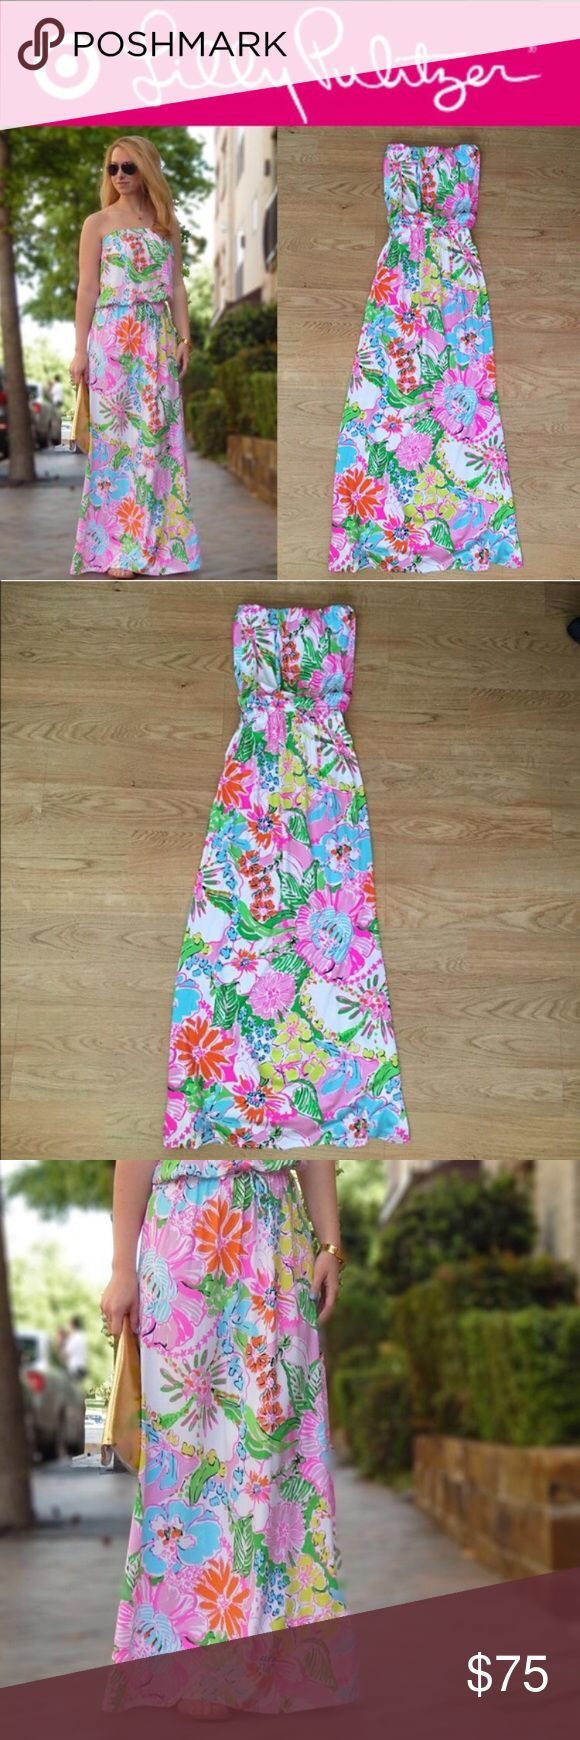 Lilly Pulitzer for Target Maxi Dress NWT! Part of the special edition Lilly for Target collaboration. No longer available in stores! Highly popular Nosey Posey print. Size Medium. Perfect condition. Lilly Pulitzer for Target Dresses Maxi